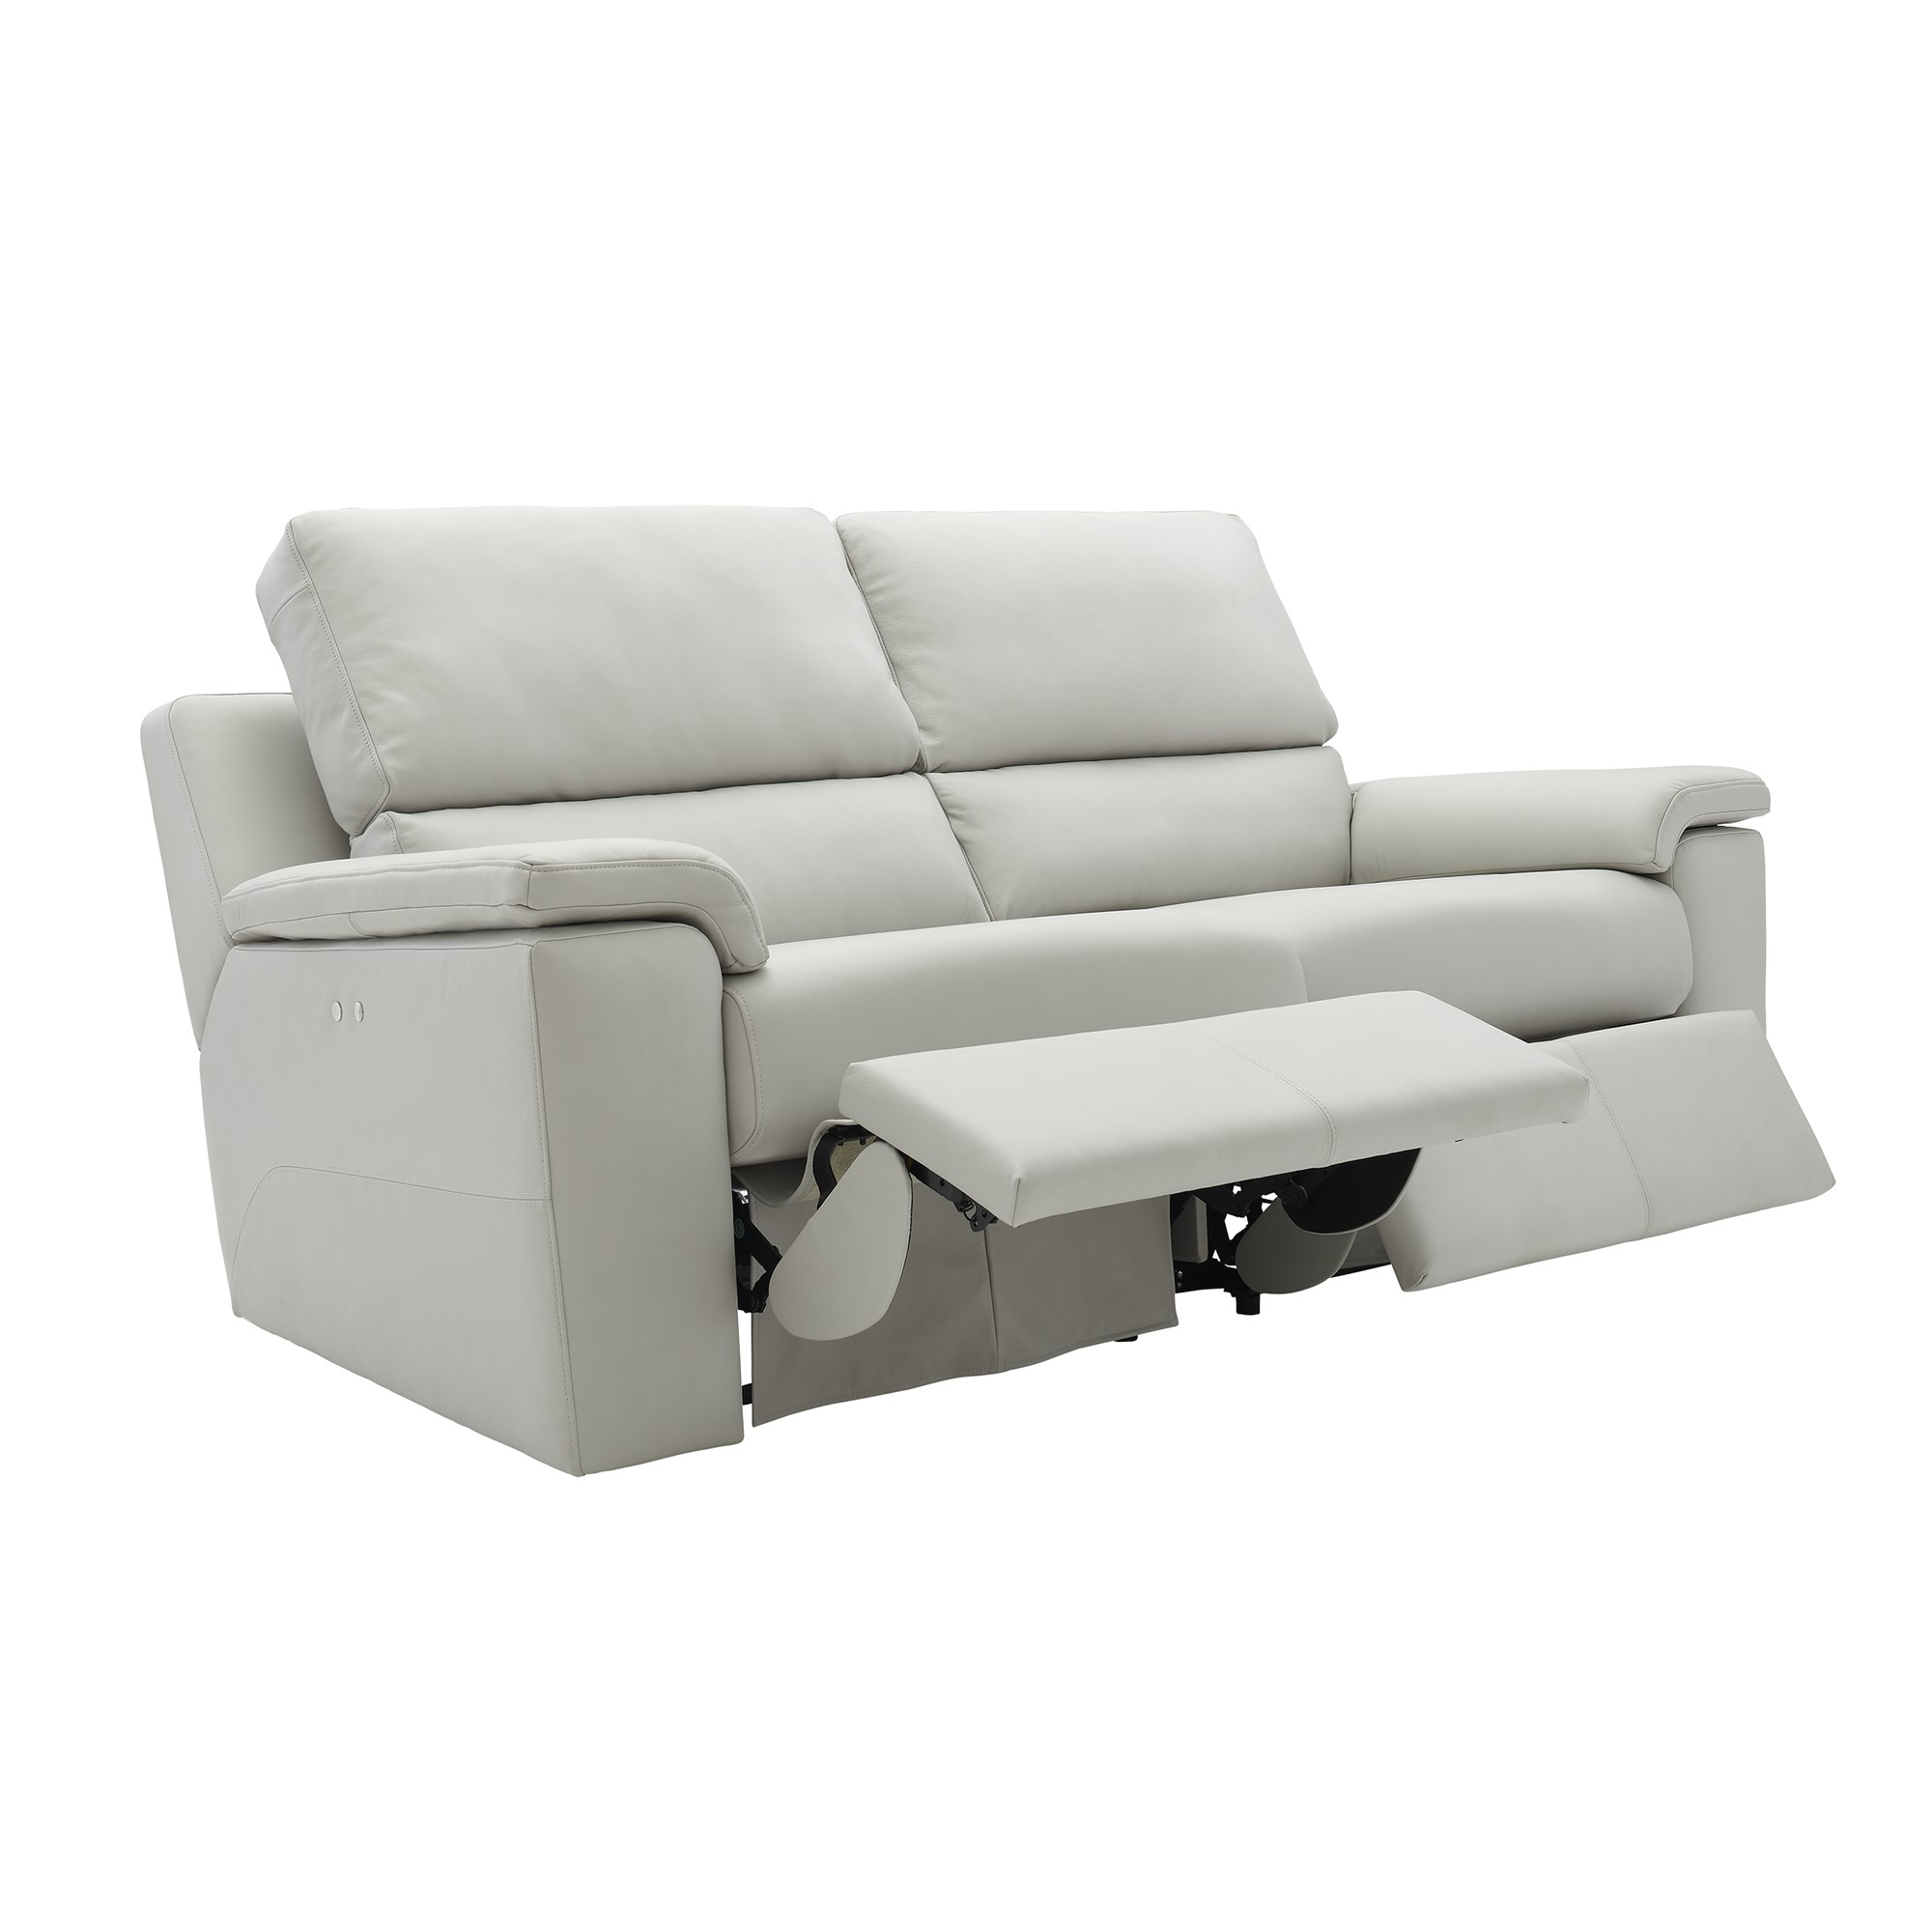 Brilliant 3 Seater Electric Recliner Double Leather K Ibusinesslaw Wood Chair Design Ideas Ibusinesslaworg